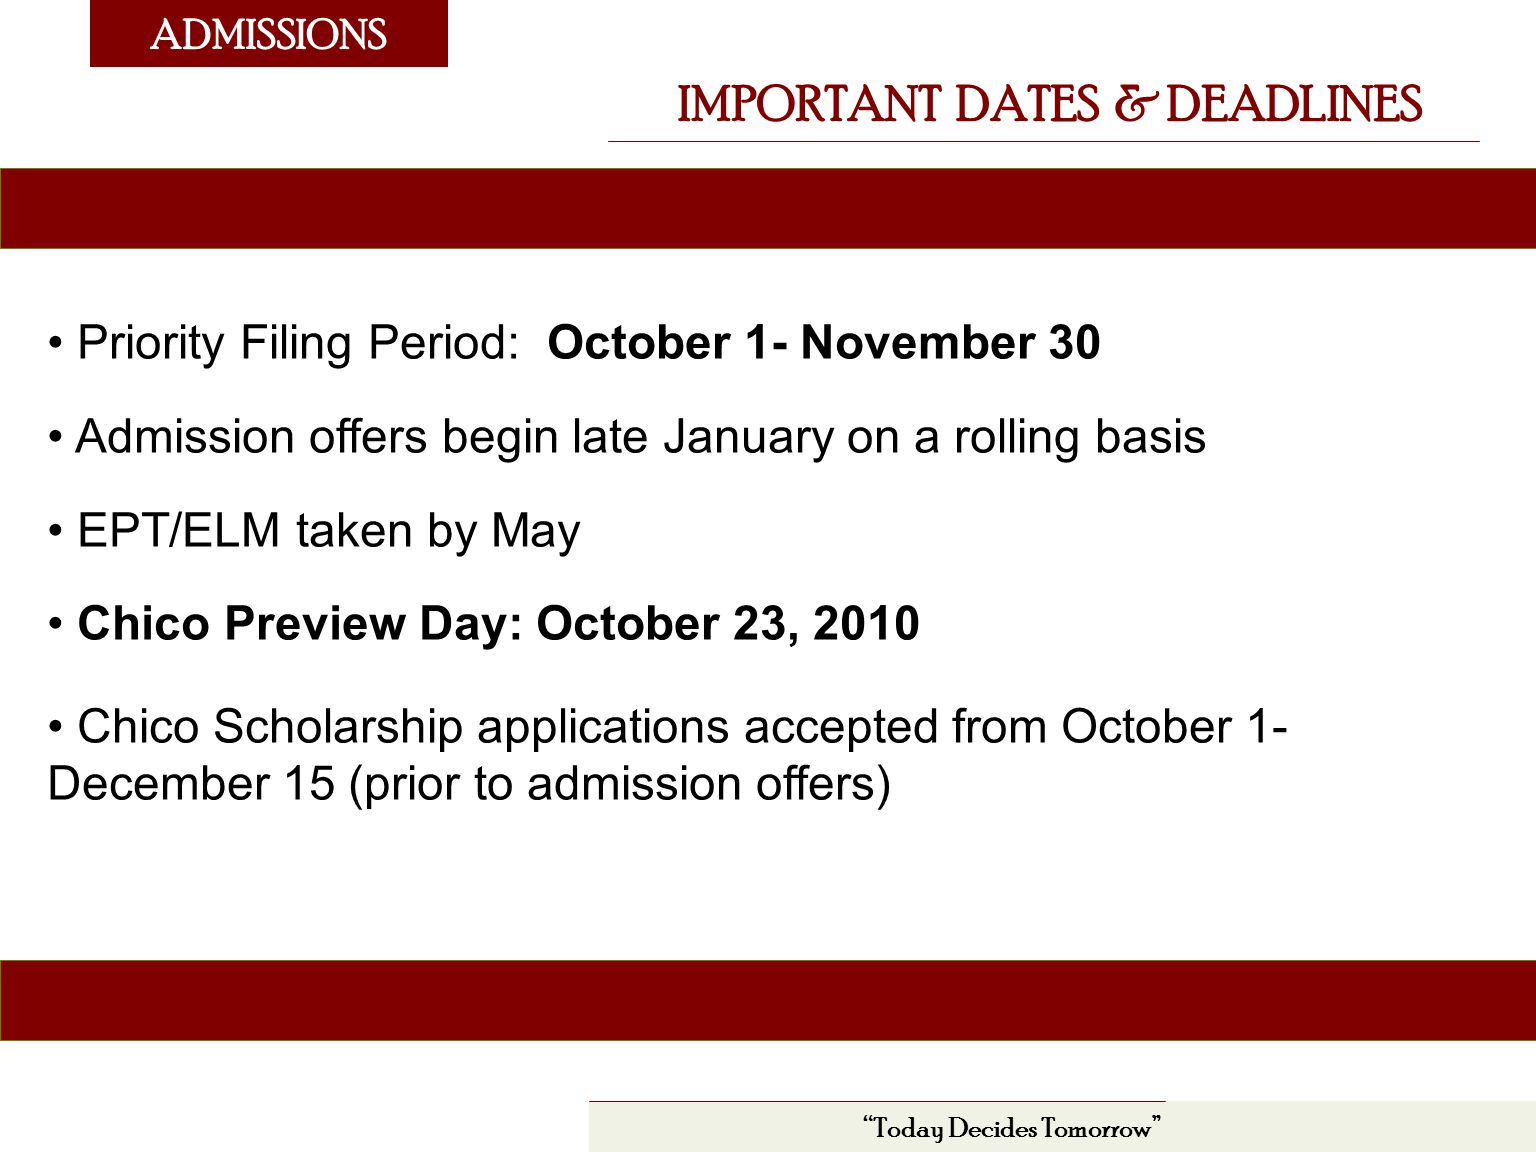 ADMISSIONS IMPORTANT DATES & DEADLINES Today Decides Tomorrow Priority Filing Period: October 1- November 30 Admission offers begin late January on a rolling basis EPT/ELM taken by May Chico Preview Day: October 23, 2010 Chico Scholarship applications accepted from October 1- December 15 (prior to admission offers)